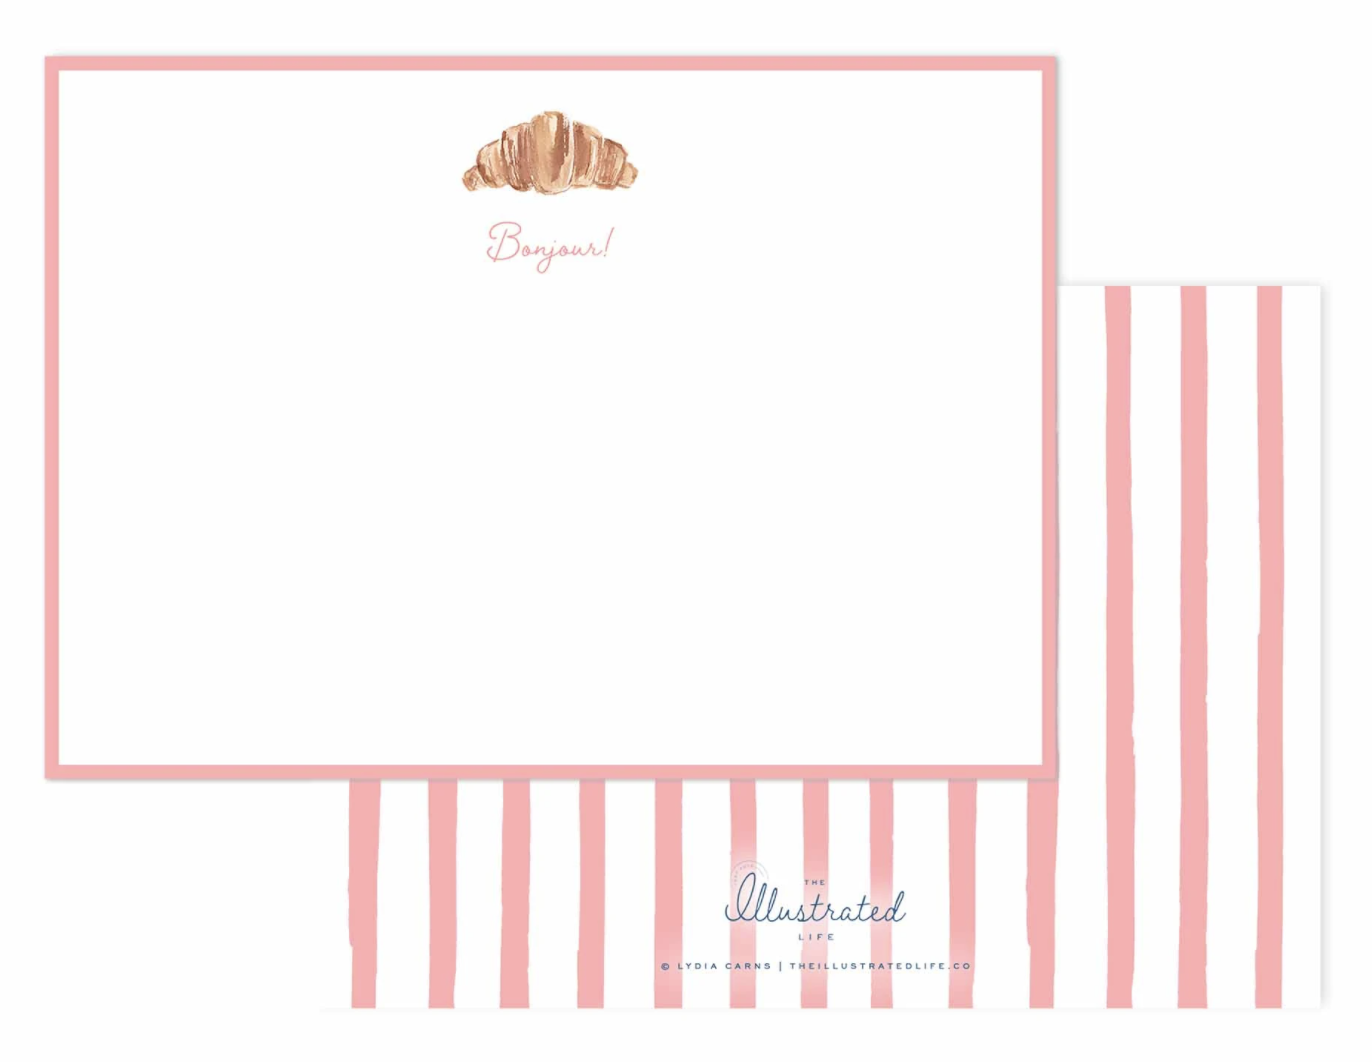 wit & whimsy stationery